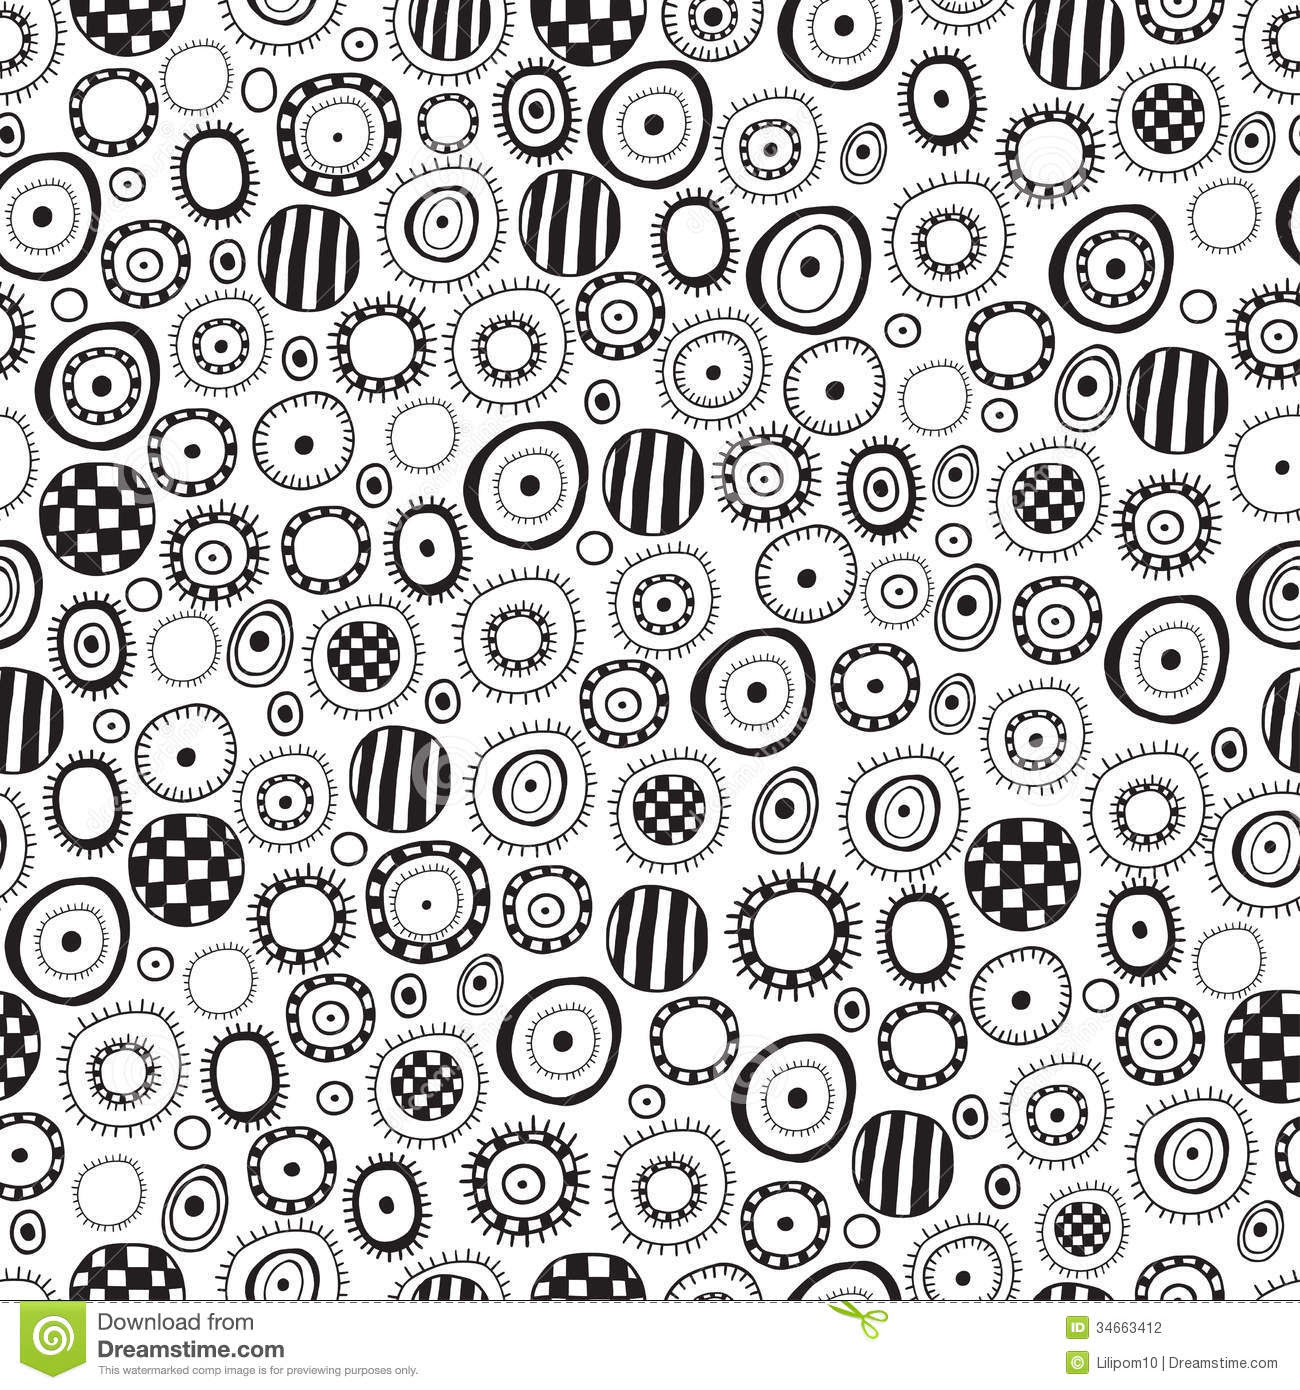 16 Black And White Abstract Designs Images Black And White